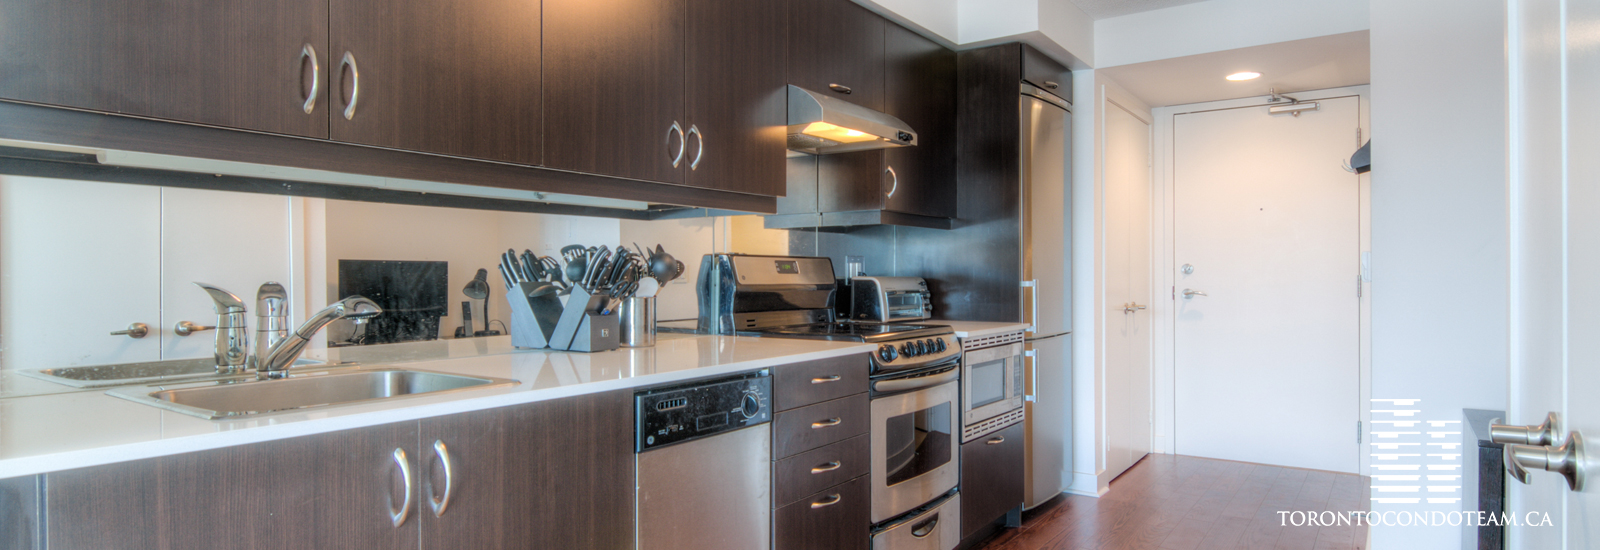 320 Richmond Street Condos For Sale